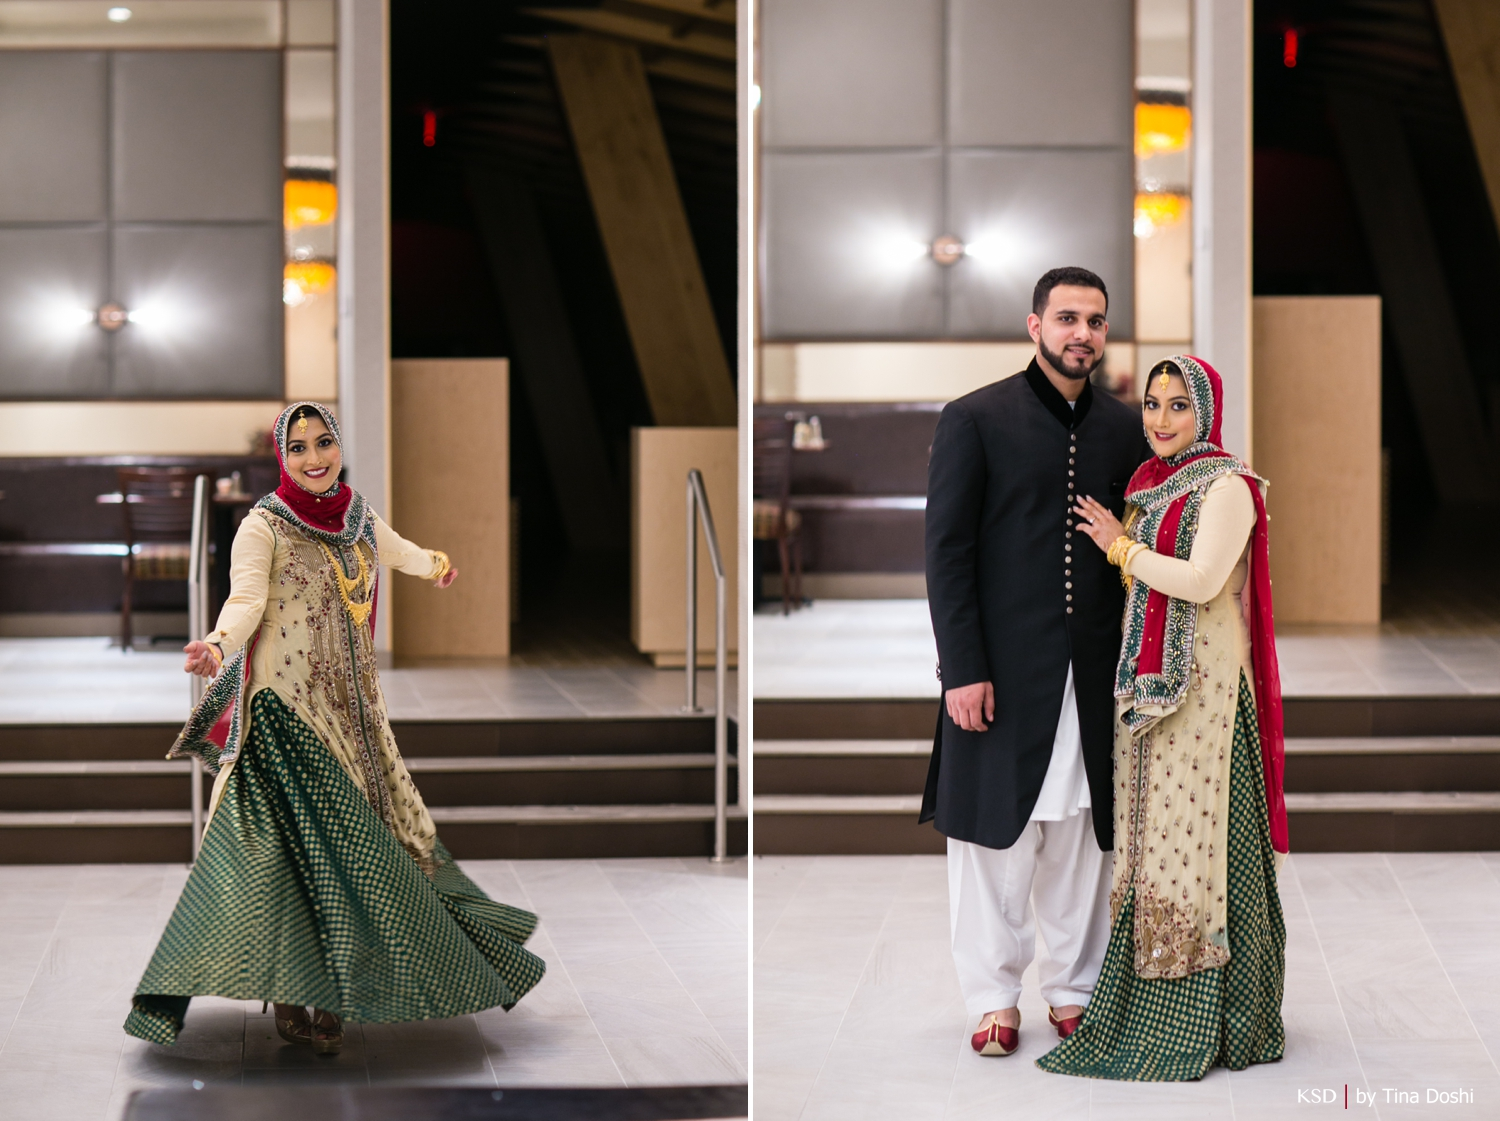 nj_south_asian_wedding_0030